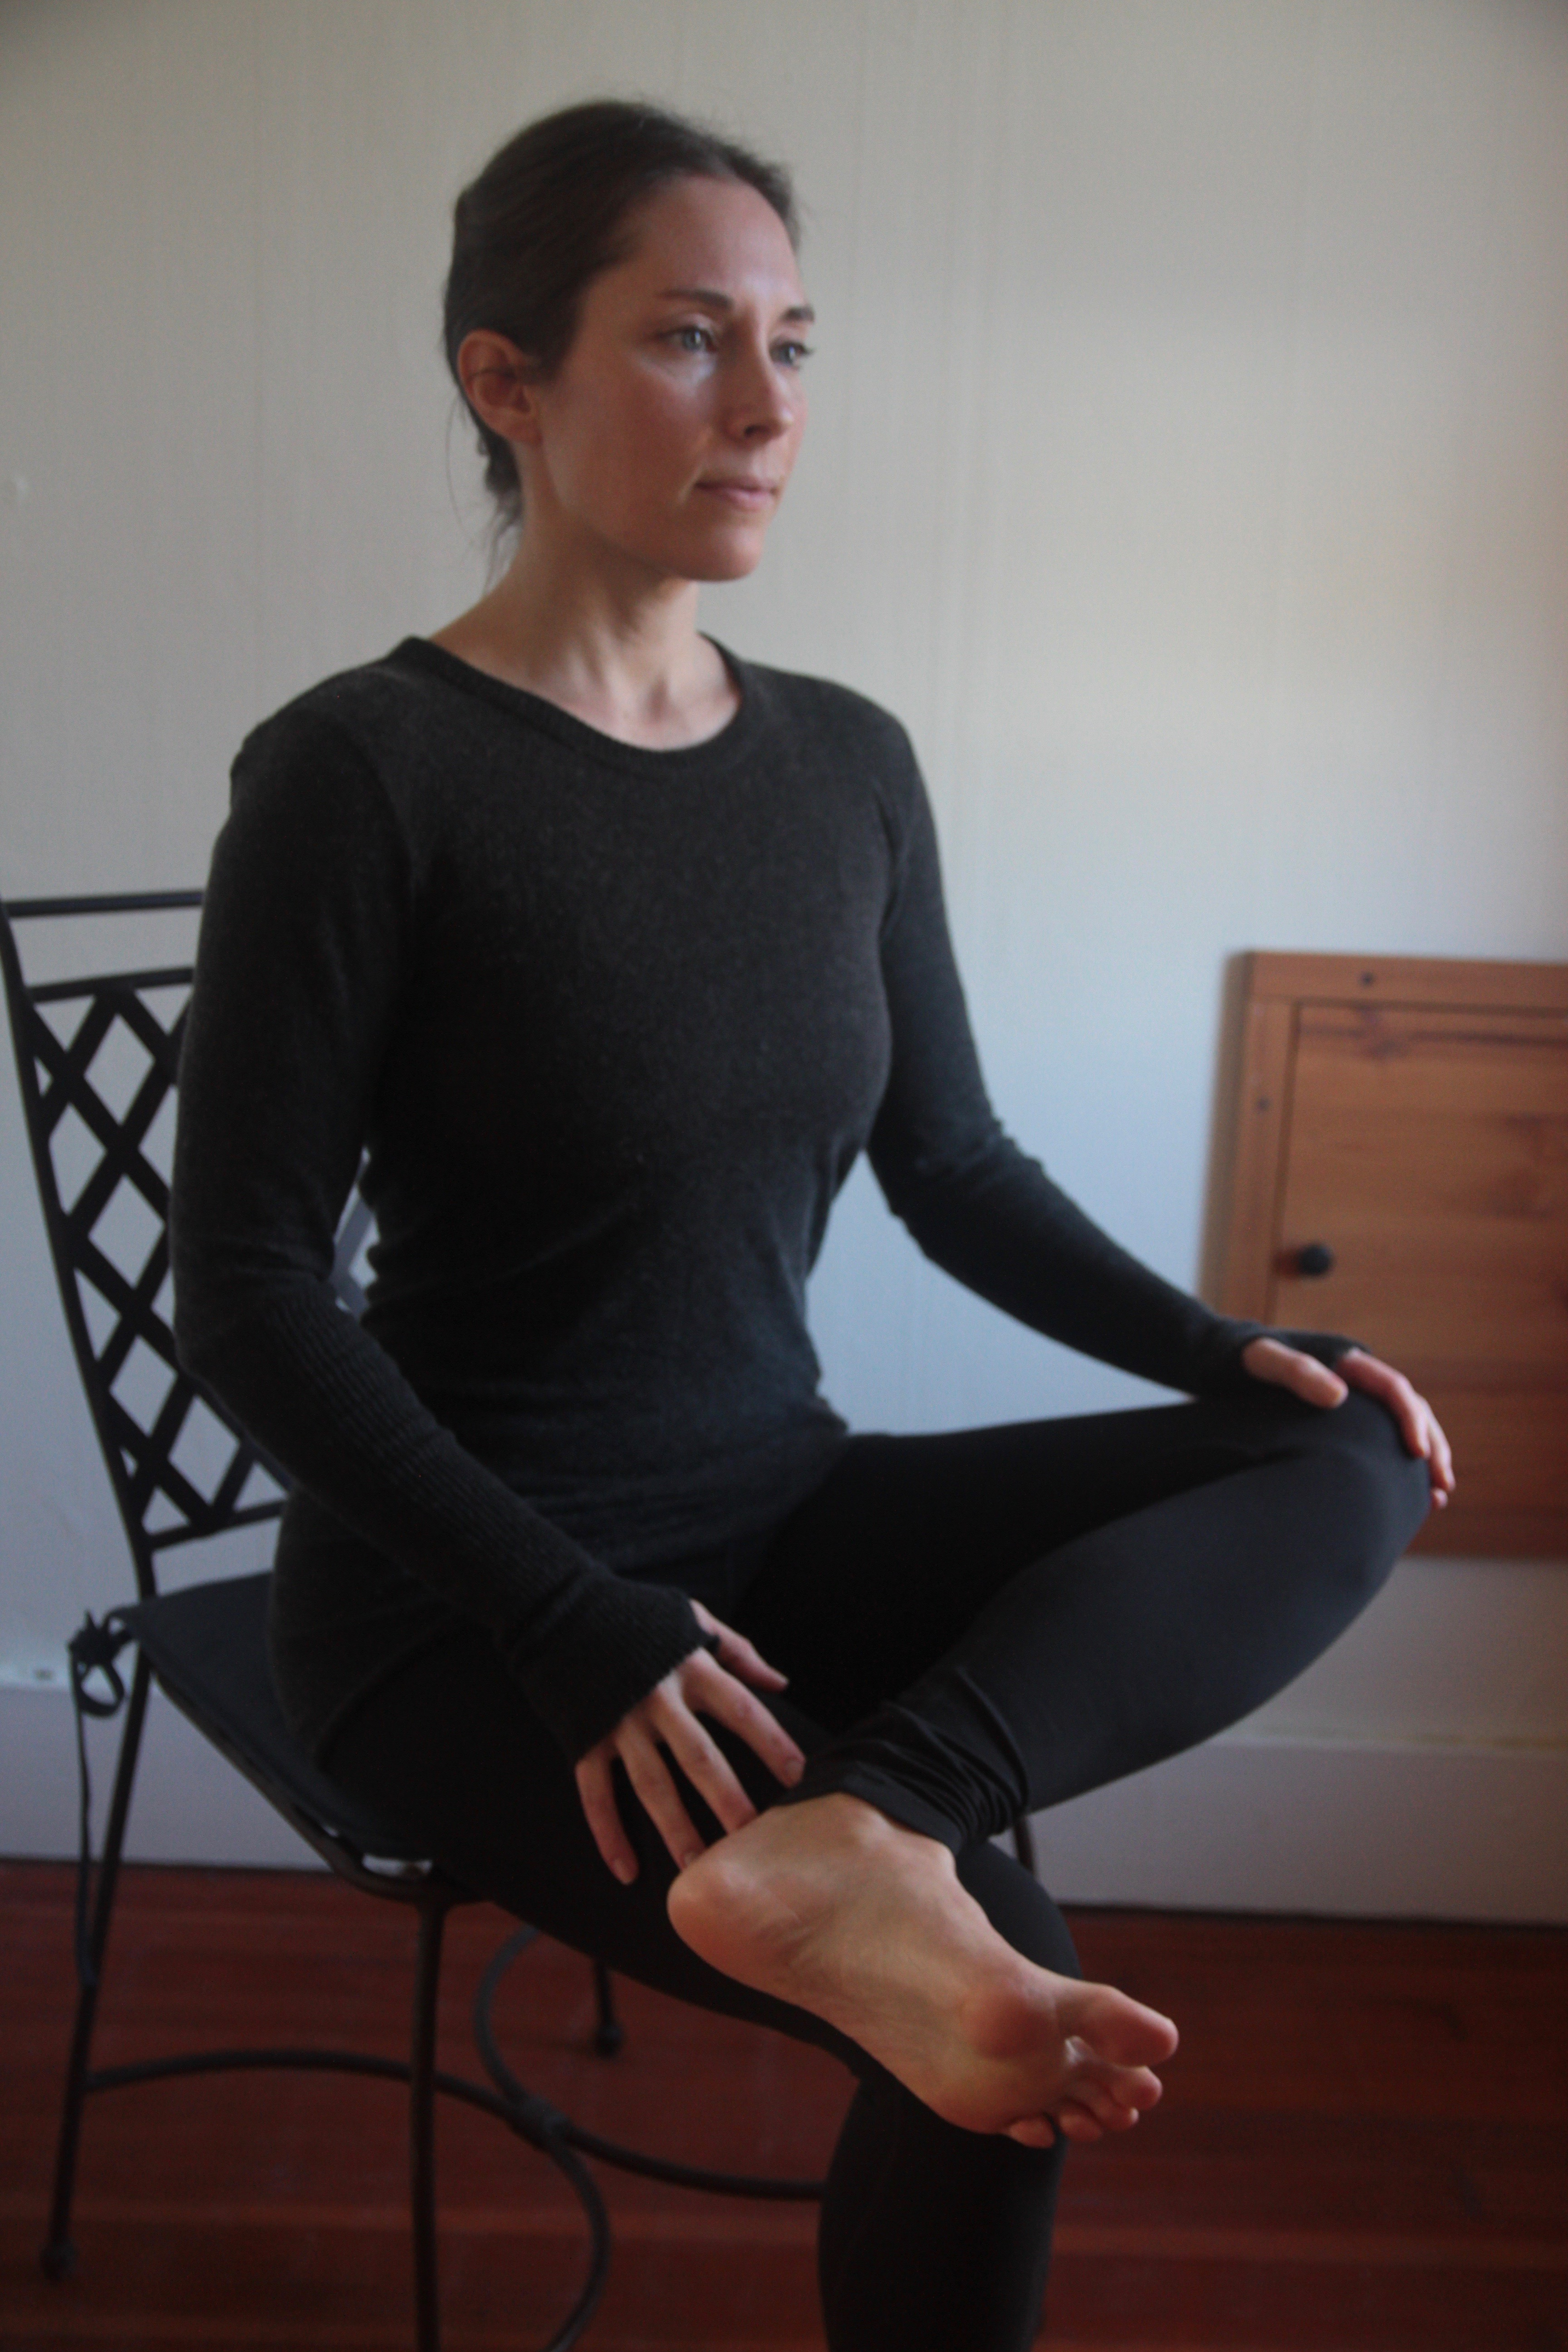 Pigeon Pose, chair yoga, yoga at the office, stress release yoga, beginner's yoga